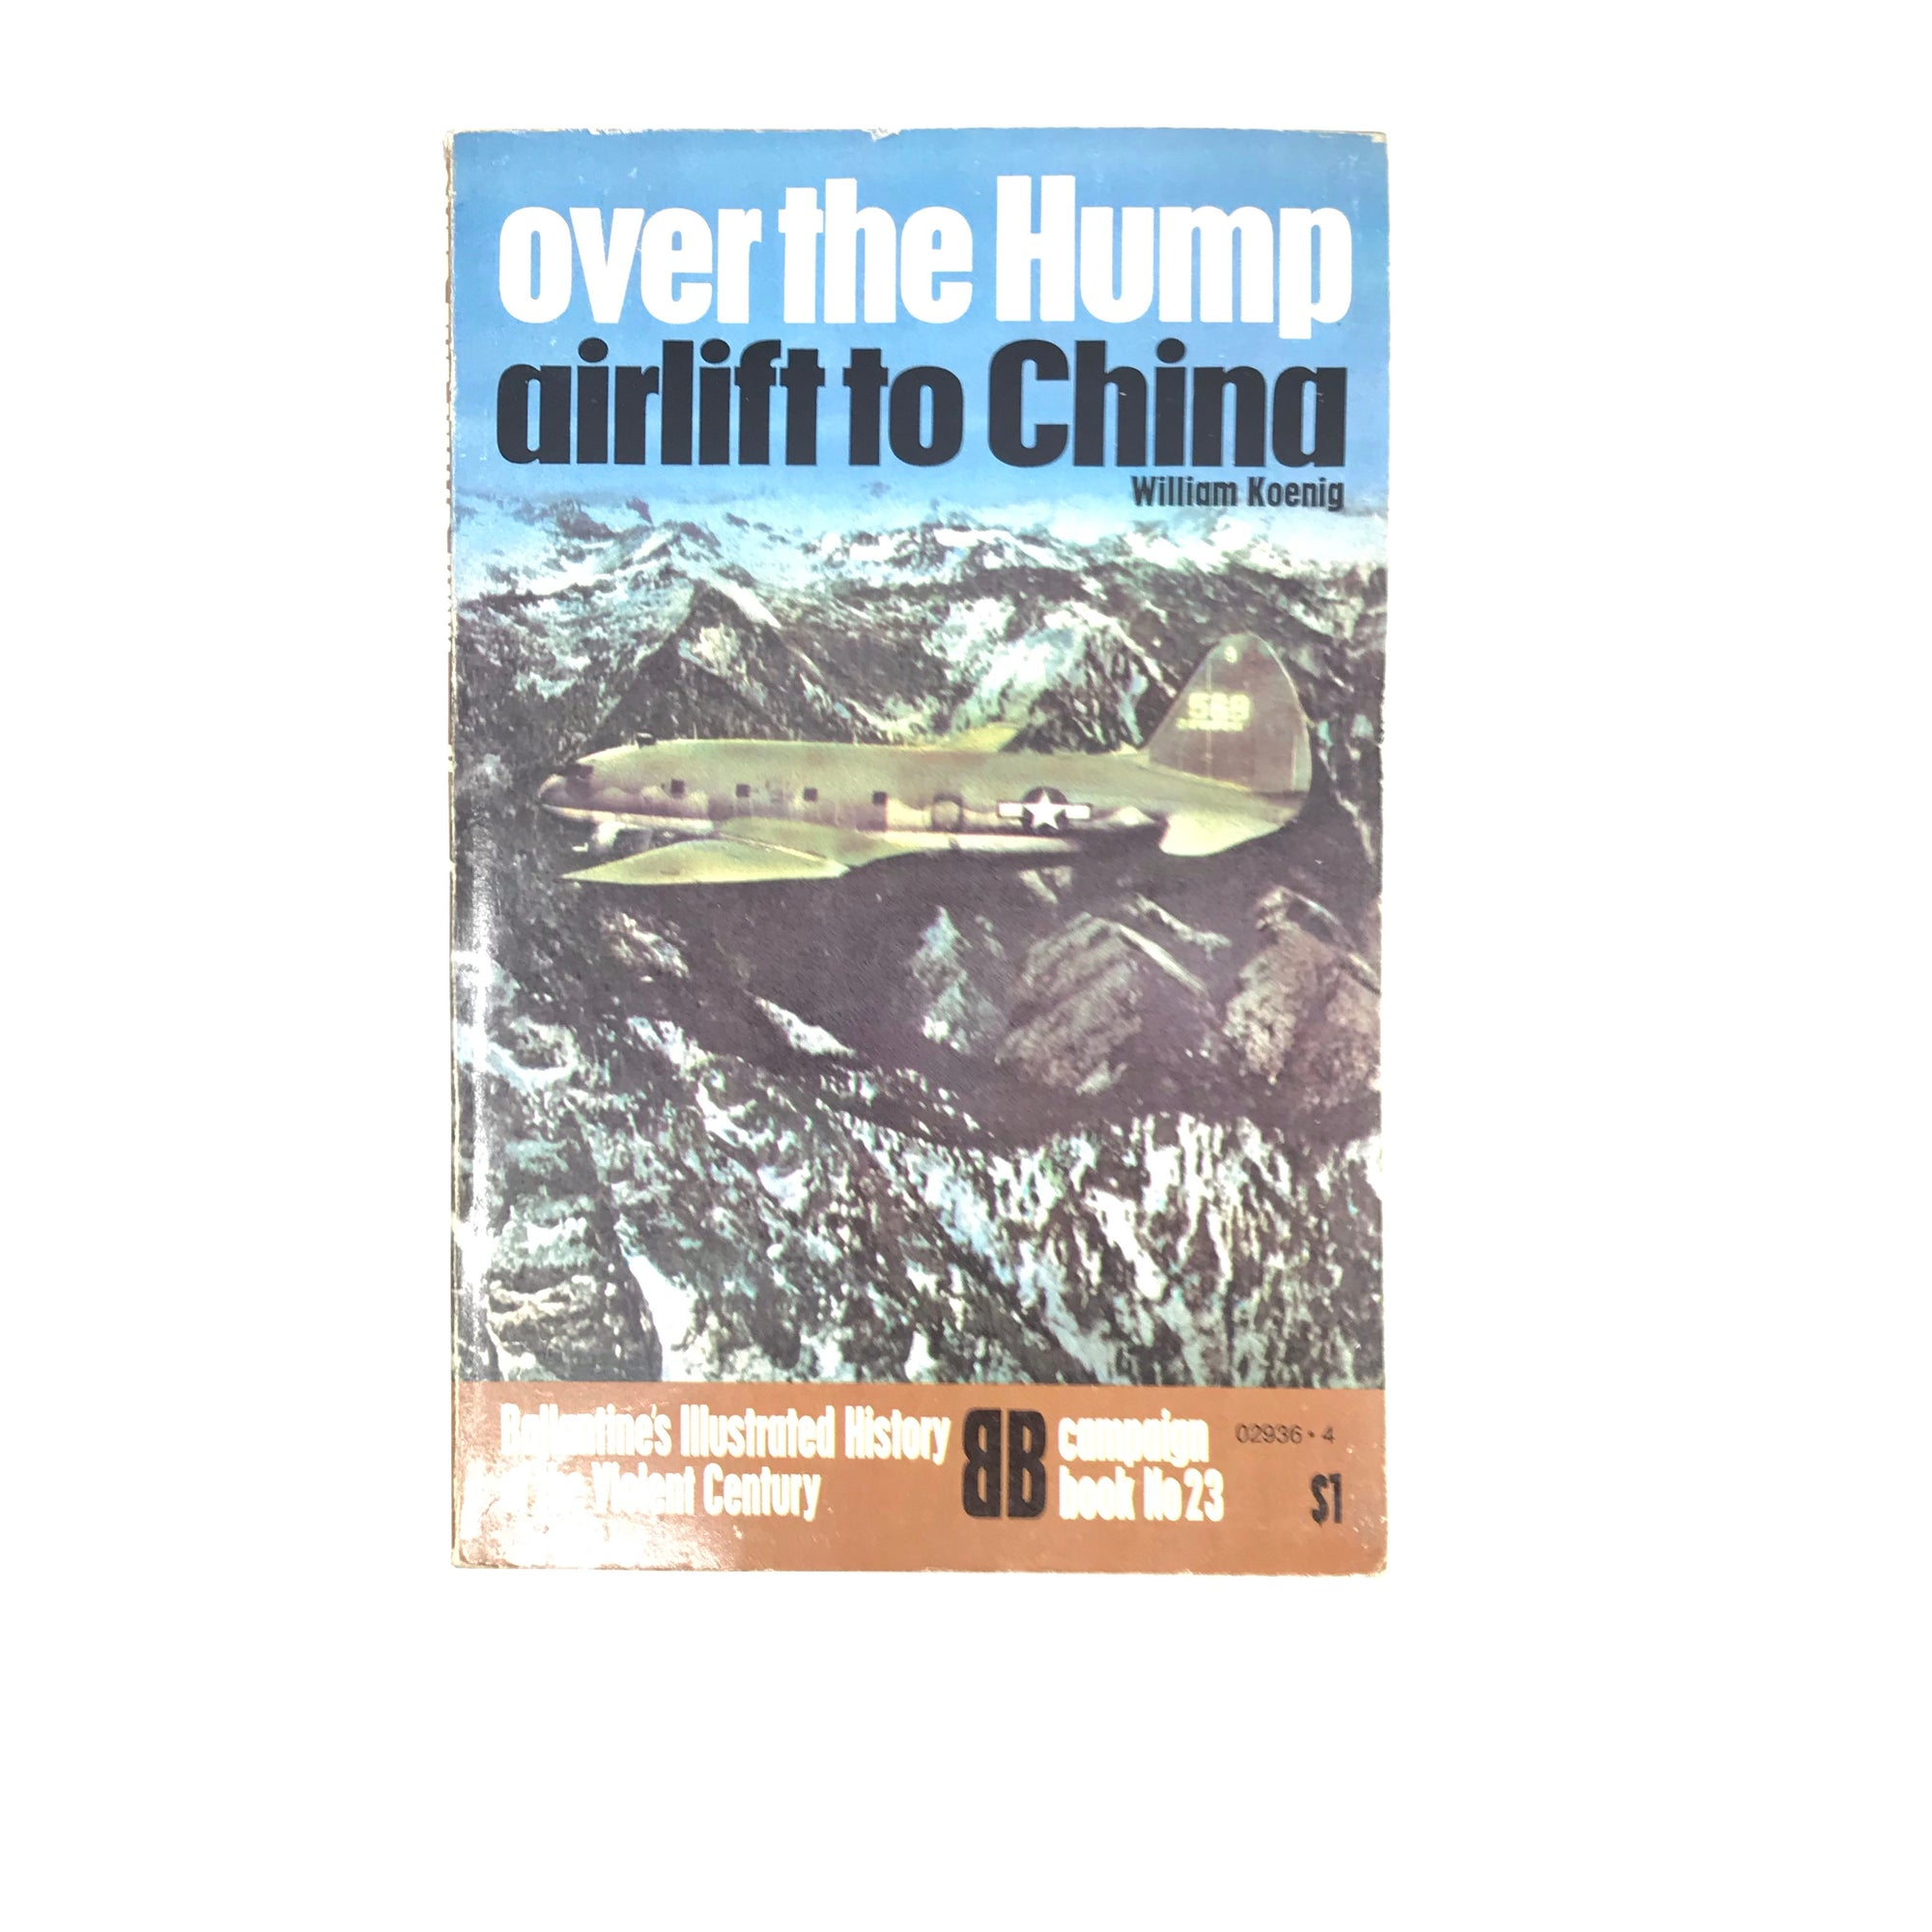 Ballantine's Illustrated History of the Violent Century: Campaign Book No23 Over the Hump Airlift to China (William Koenig)